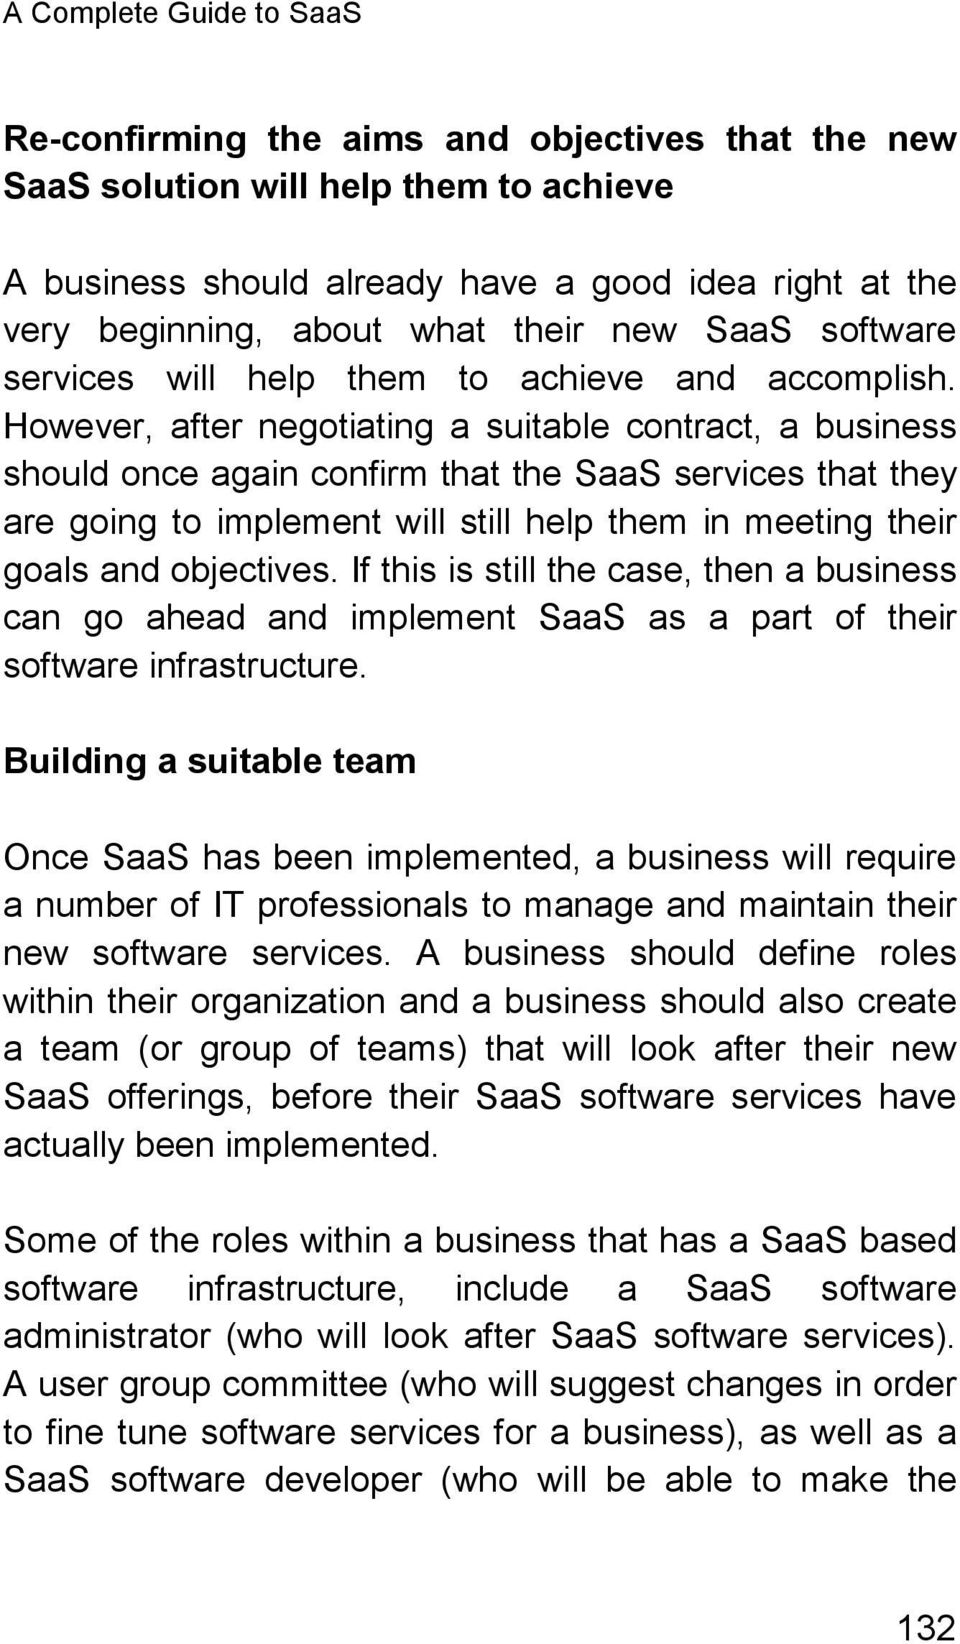 However, after negotiating a suitable contract, a business should once again confirm that the SaaS services that they are going to implement will still help them in meeting their goals and objectives.